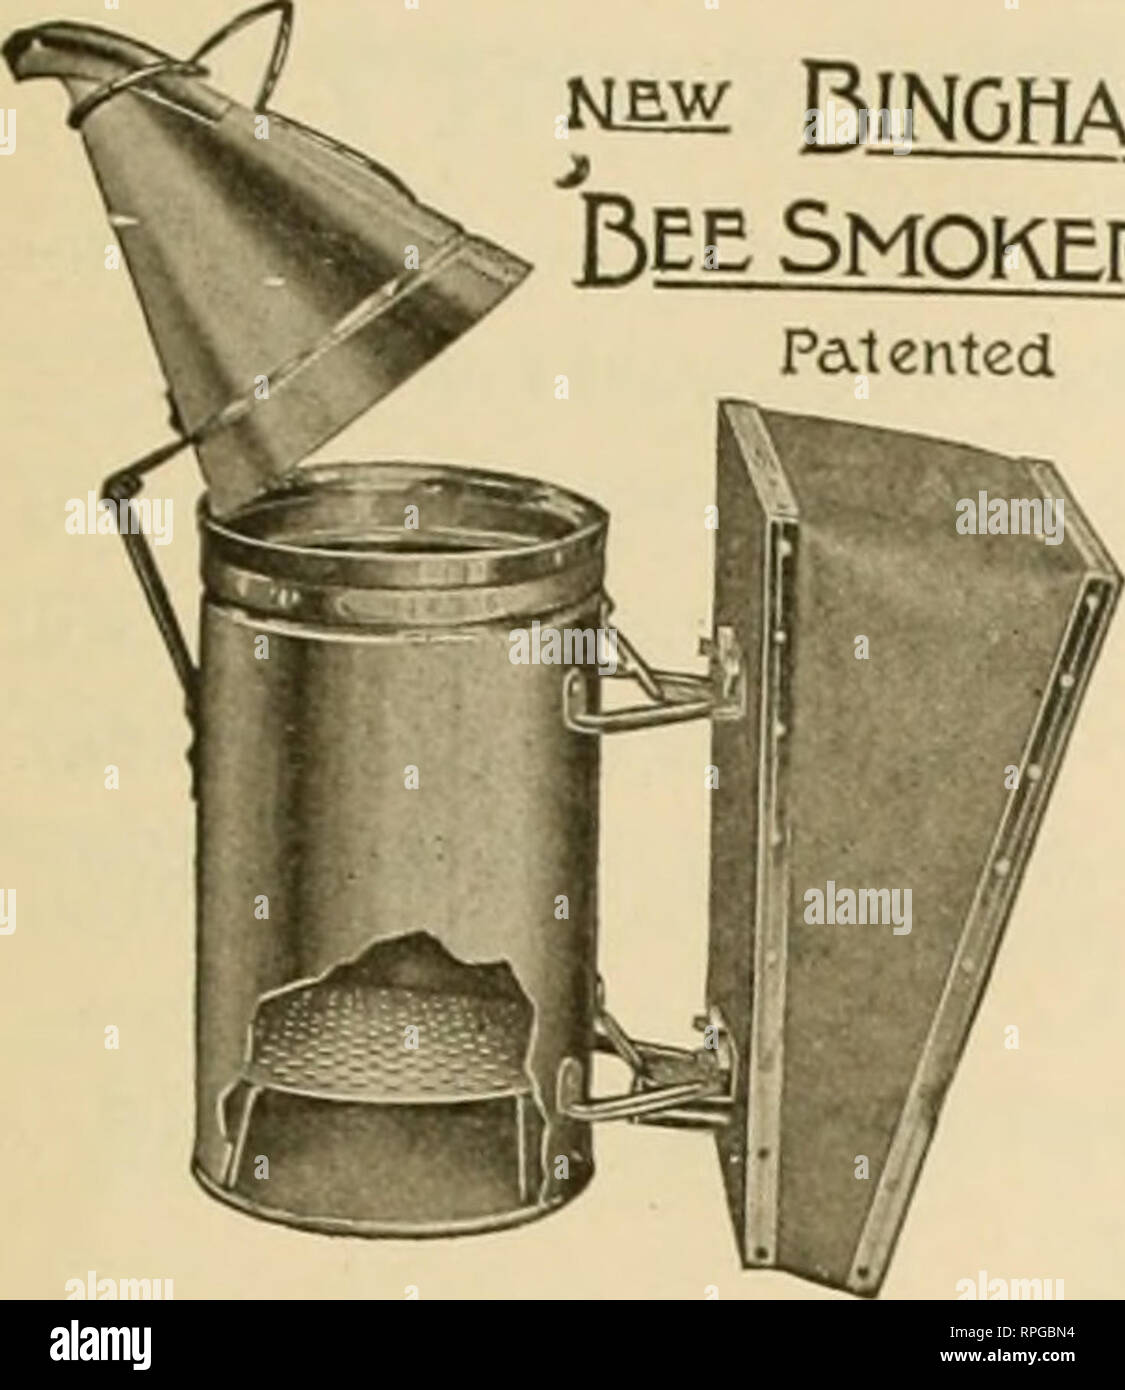 """. American bee journal. Bee culture; Bees. December, 1915. American Utie Journal Bingham Bee Smokers and Uncapping Knives ^l£w Bingham Bee Smoker Patented. Have been on the market nearly 40 years, and are the standard in this and many foreign countries. Insist on the genuine improved articles from your dealer or direct from manufacturers. Postage extra ship. wt. Price Smolte Eneiiie. 4 inch. 28 oz $1.25 Doctor }ii ' 26 oz 85 Conatieror 3 """" 23 oz 75 Little Wonder 2M """" 16 oz 50 Smoke Eneine or Doctor in copper 50c extra Uncapping Knives, improved Cold Handle Stan'd Length W 20 oz 75 Ex - Stock Image"""